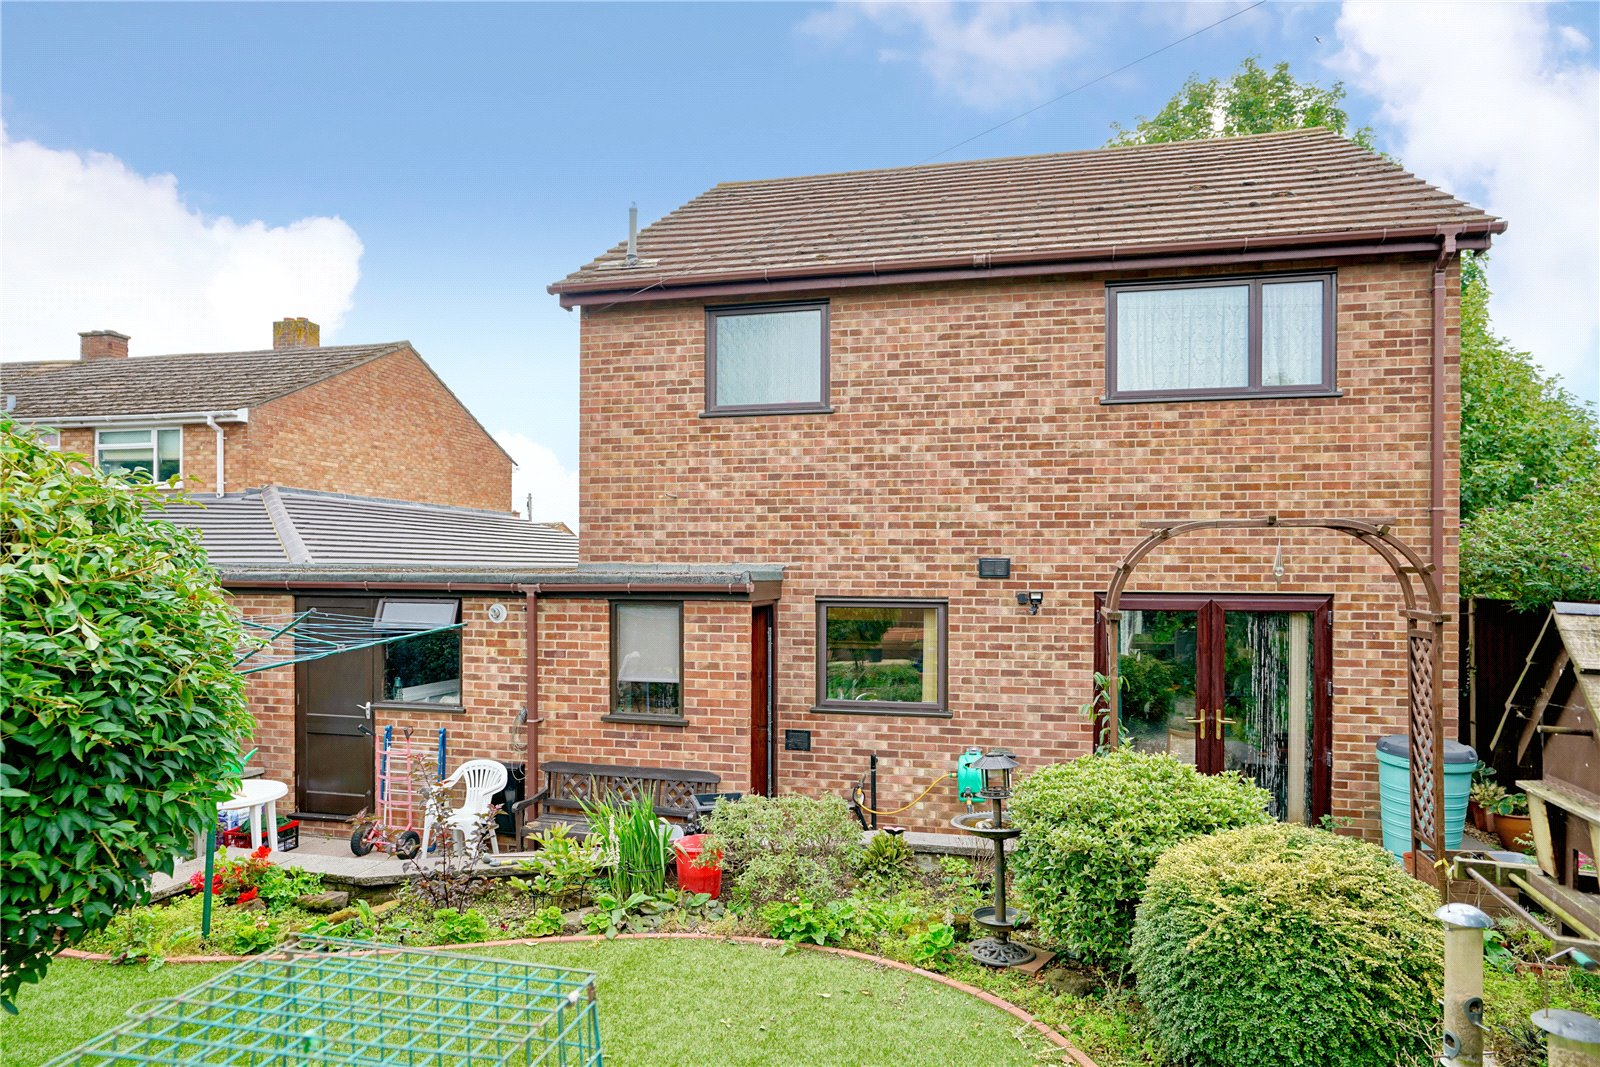 3 bed house for sale in Eaton Ford, PE19 7AR, PE19